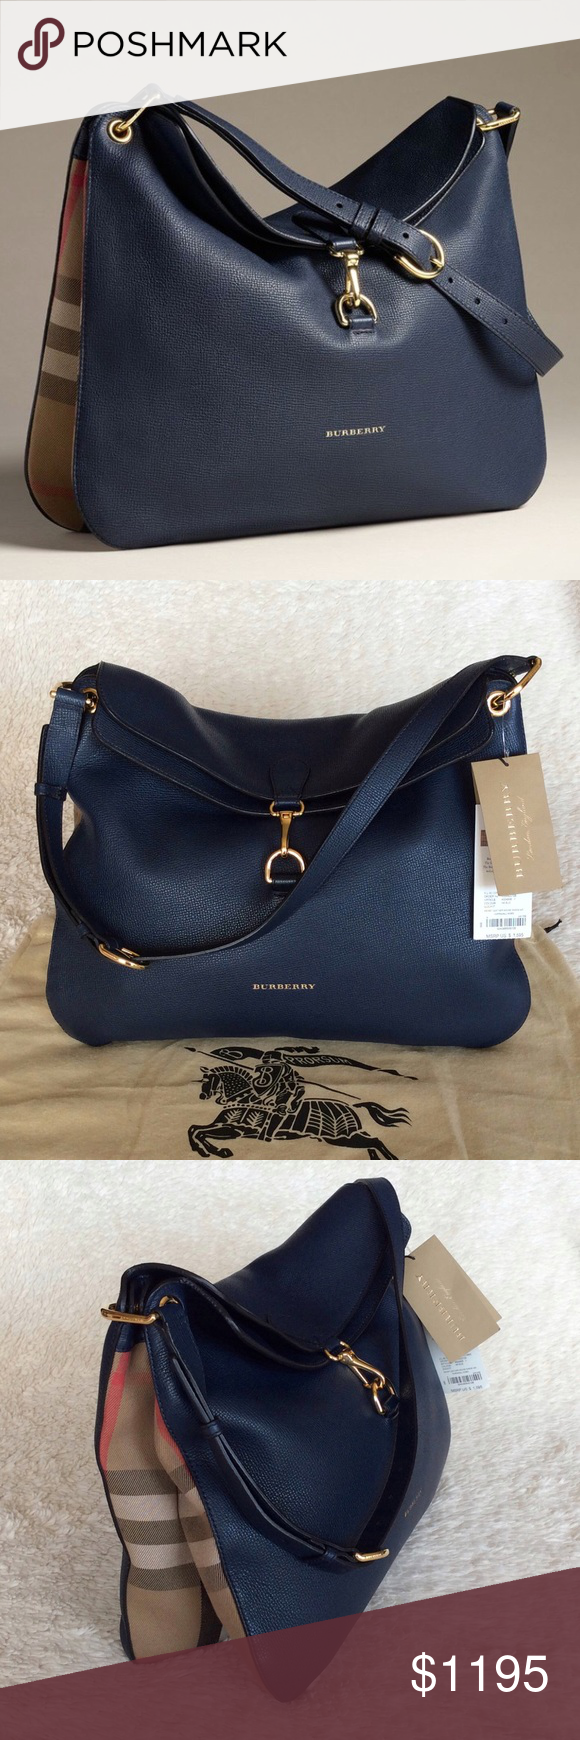 65dd9df8390a NEW BURBERRY CORNWALL SHOULDER BAG BLUE INK Authentic. Brand new with tags  and dust